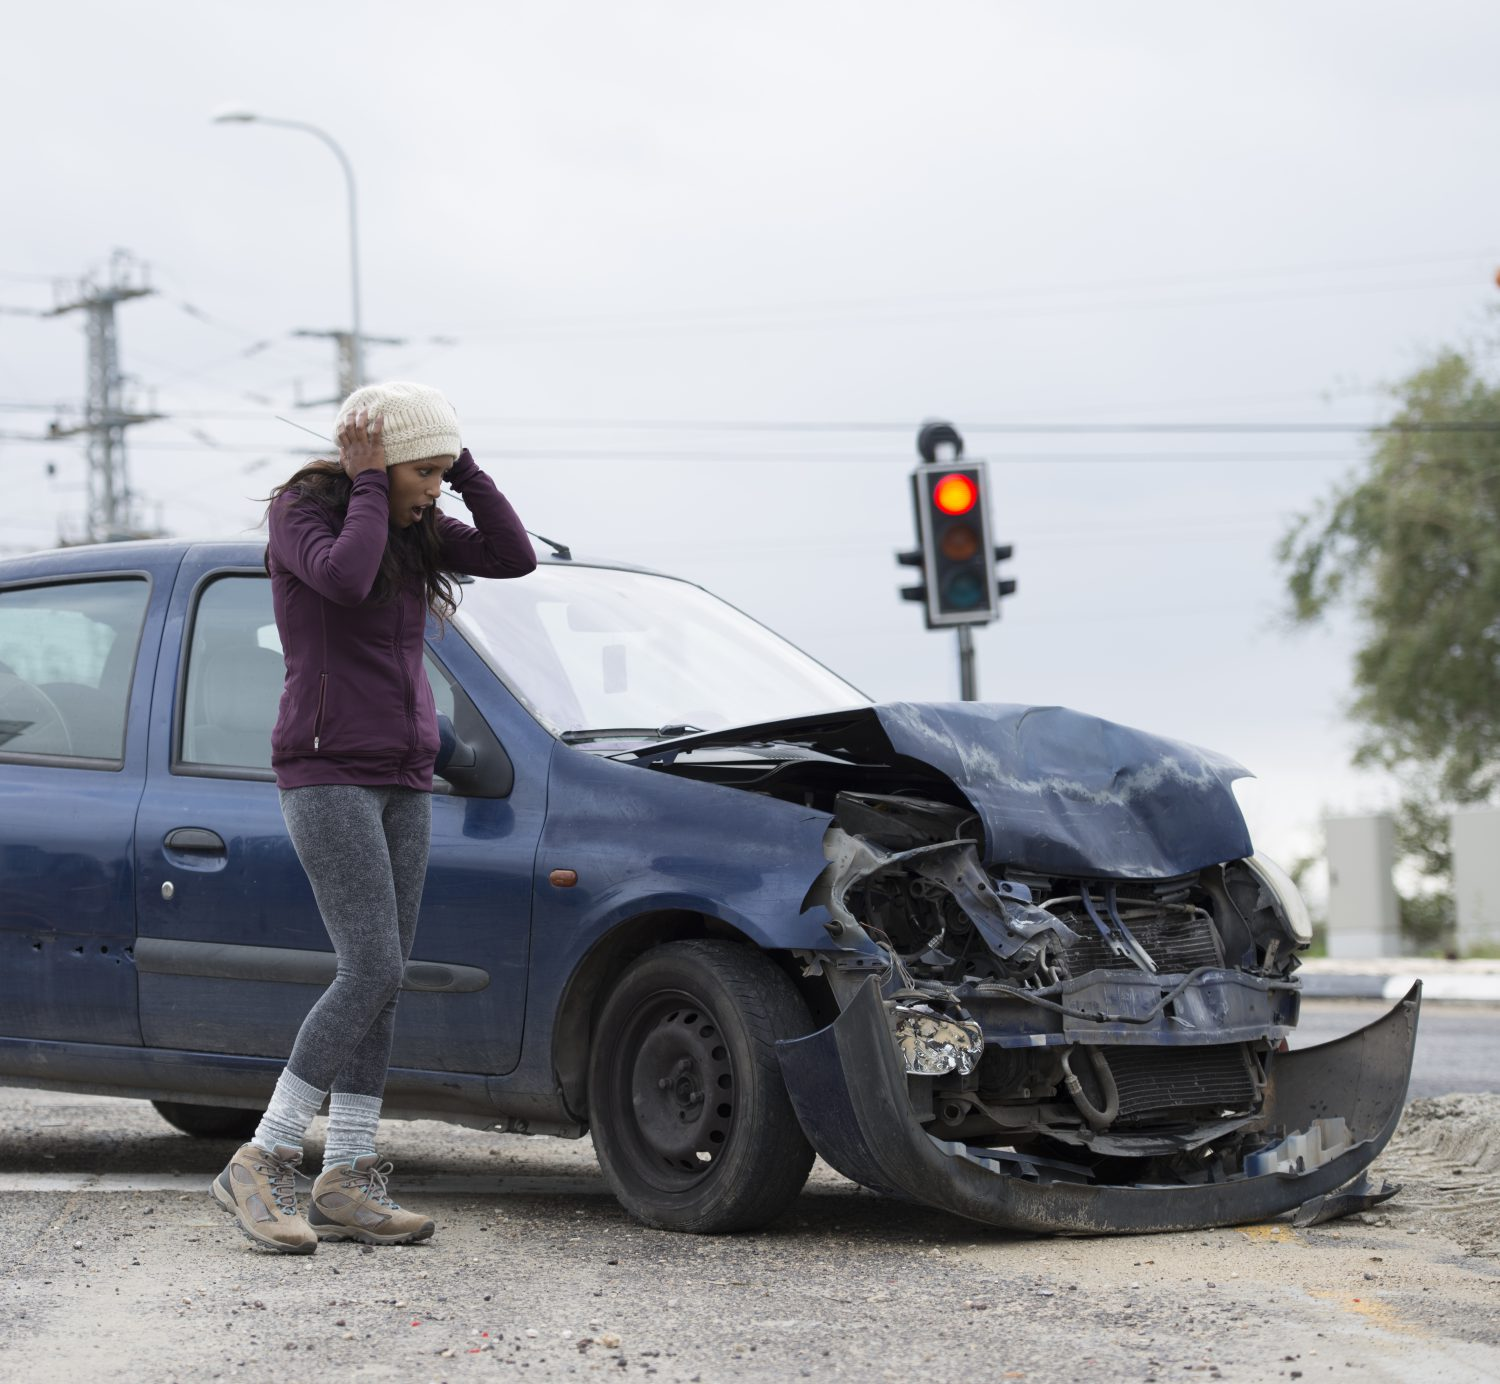 Woman with shocked face looking on her damaged car, holding head in hands. Car accident with frontal impact. Red traffic light is on background.